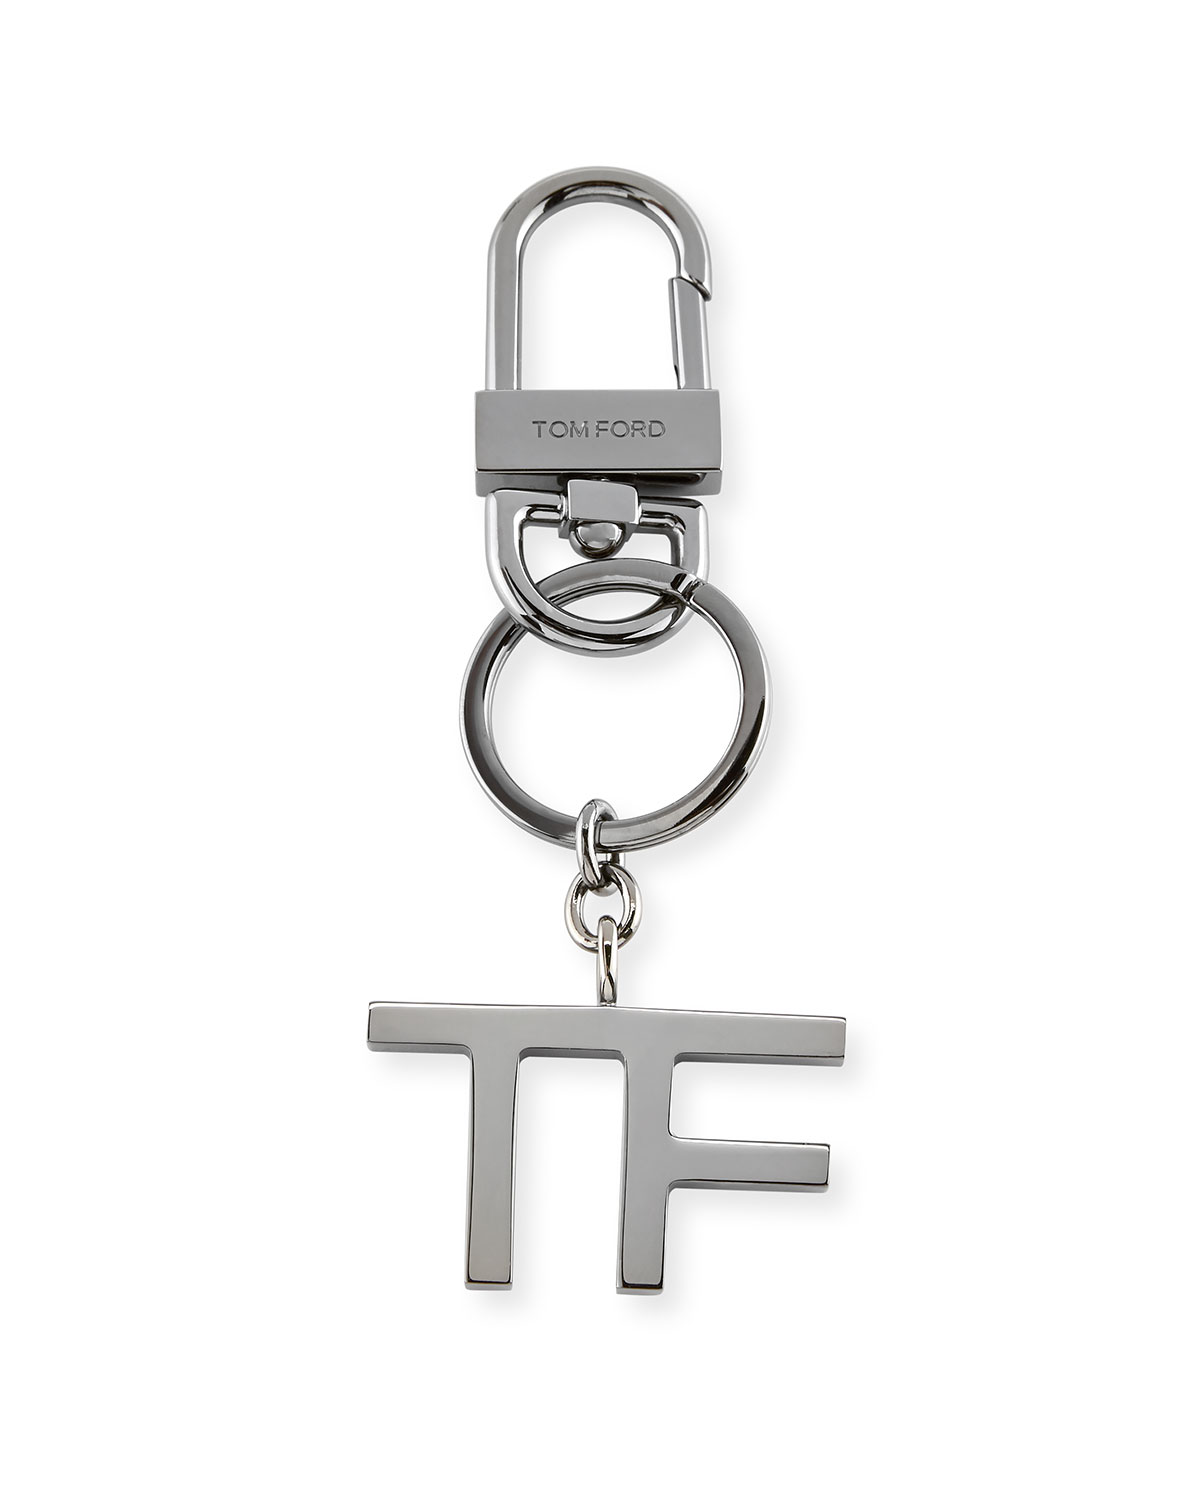 Tom Ford Tf Brass Keychain Charm Neiman Marcus